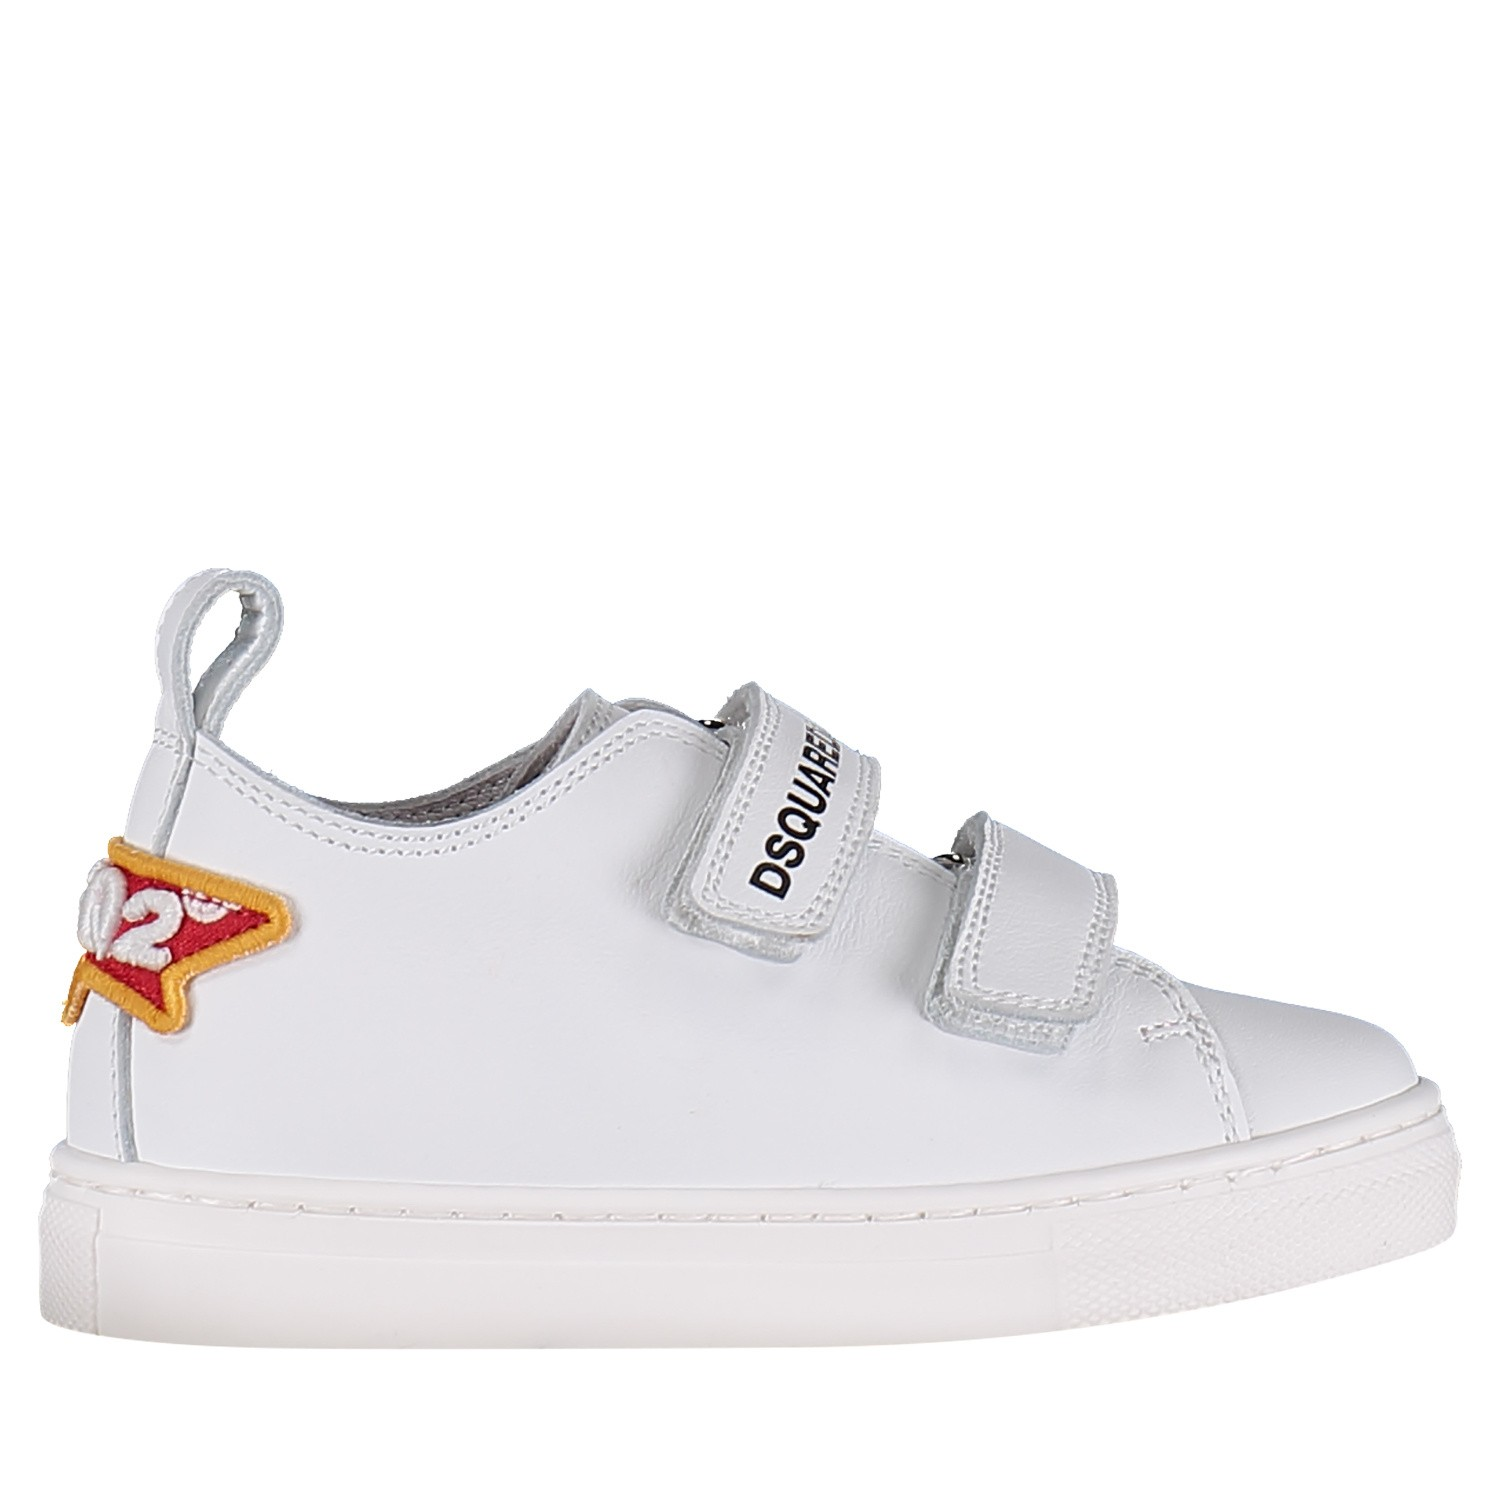 Picture of Dsquared2 59697 kids sneakers white